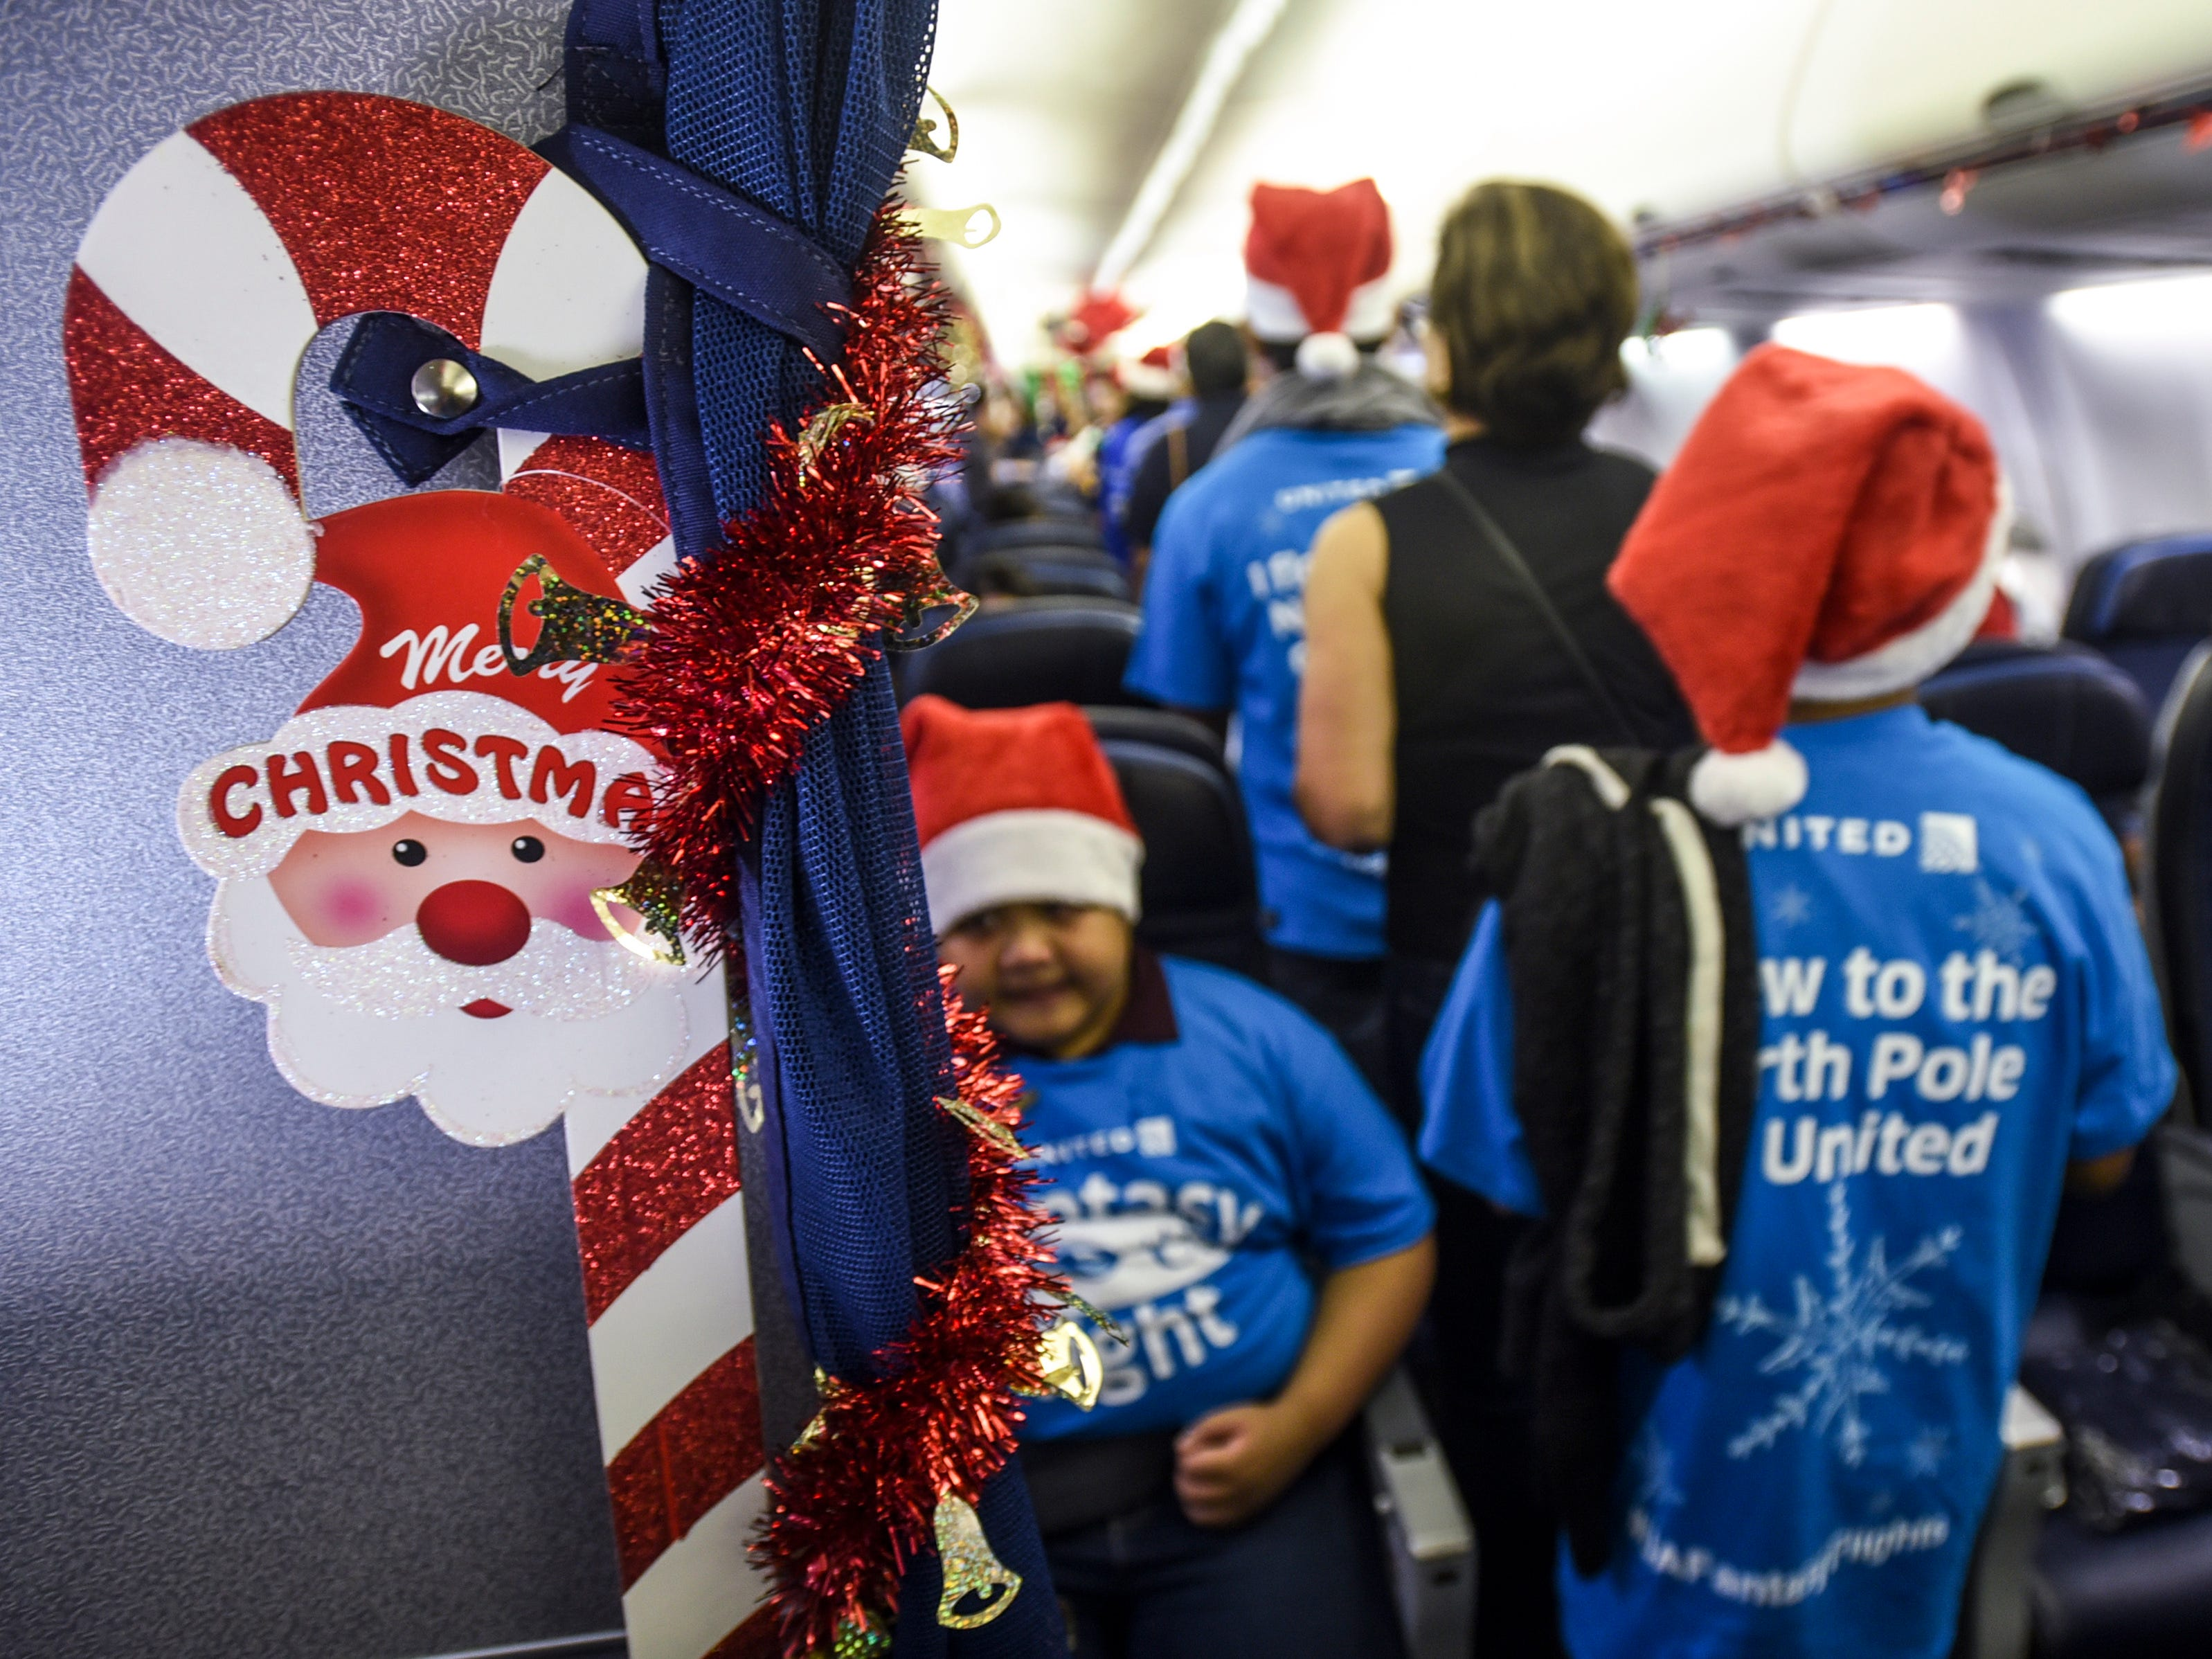 Passengers are assisted in locating their seats during United Airlines' Fantasy Flight to the North Pole at the A.B. Won Pat International Airport on Friday, Dec. 7, 2018. Thirty-three Guam Special Olympians, and their guests, were presented with an experience to enjoy live entertainment, food, games, holiday cookie decorating and face paintings after a make-believe flight to visit Santa Claus and his helpers. The event was the air carrier's fifth consecutive year of sharing holiday cheer with a group of the island's deserving children. This year, the airline's Guam hub was joined by 15 other United destinations around the globe in celebrating the holiday event.